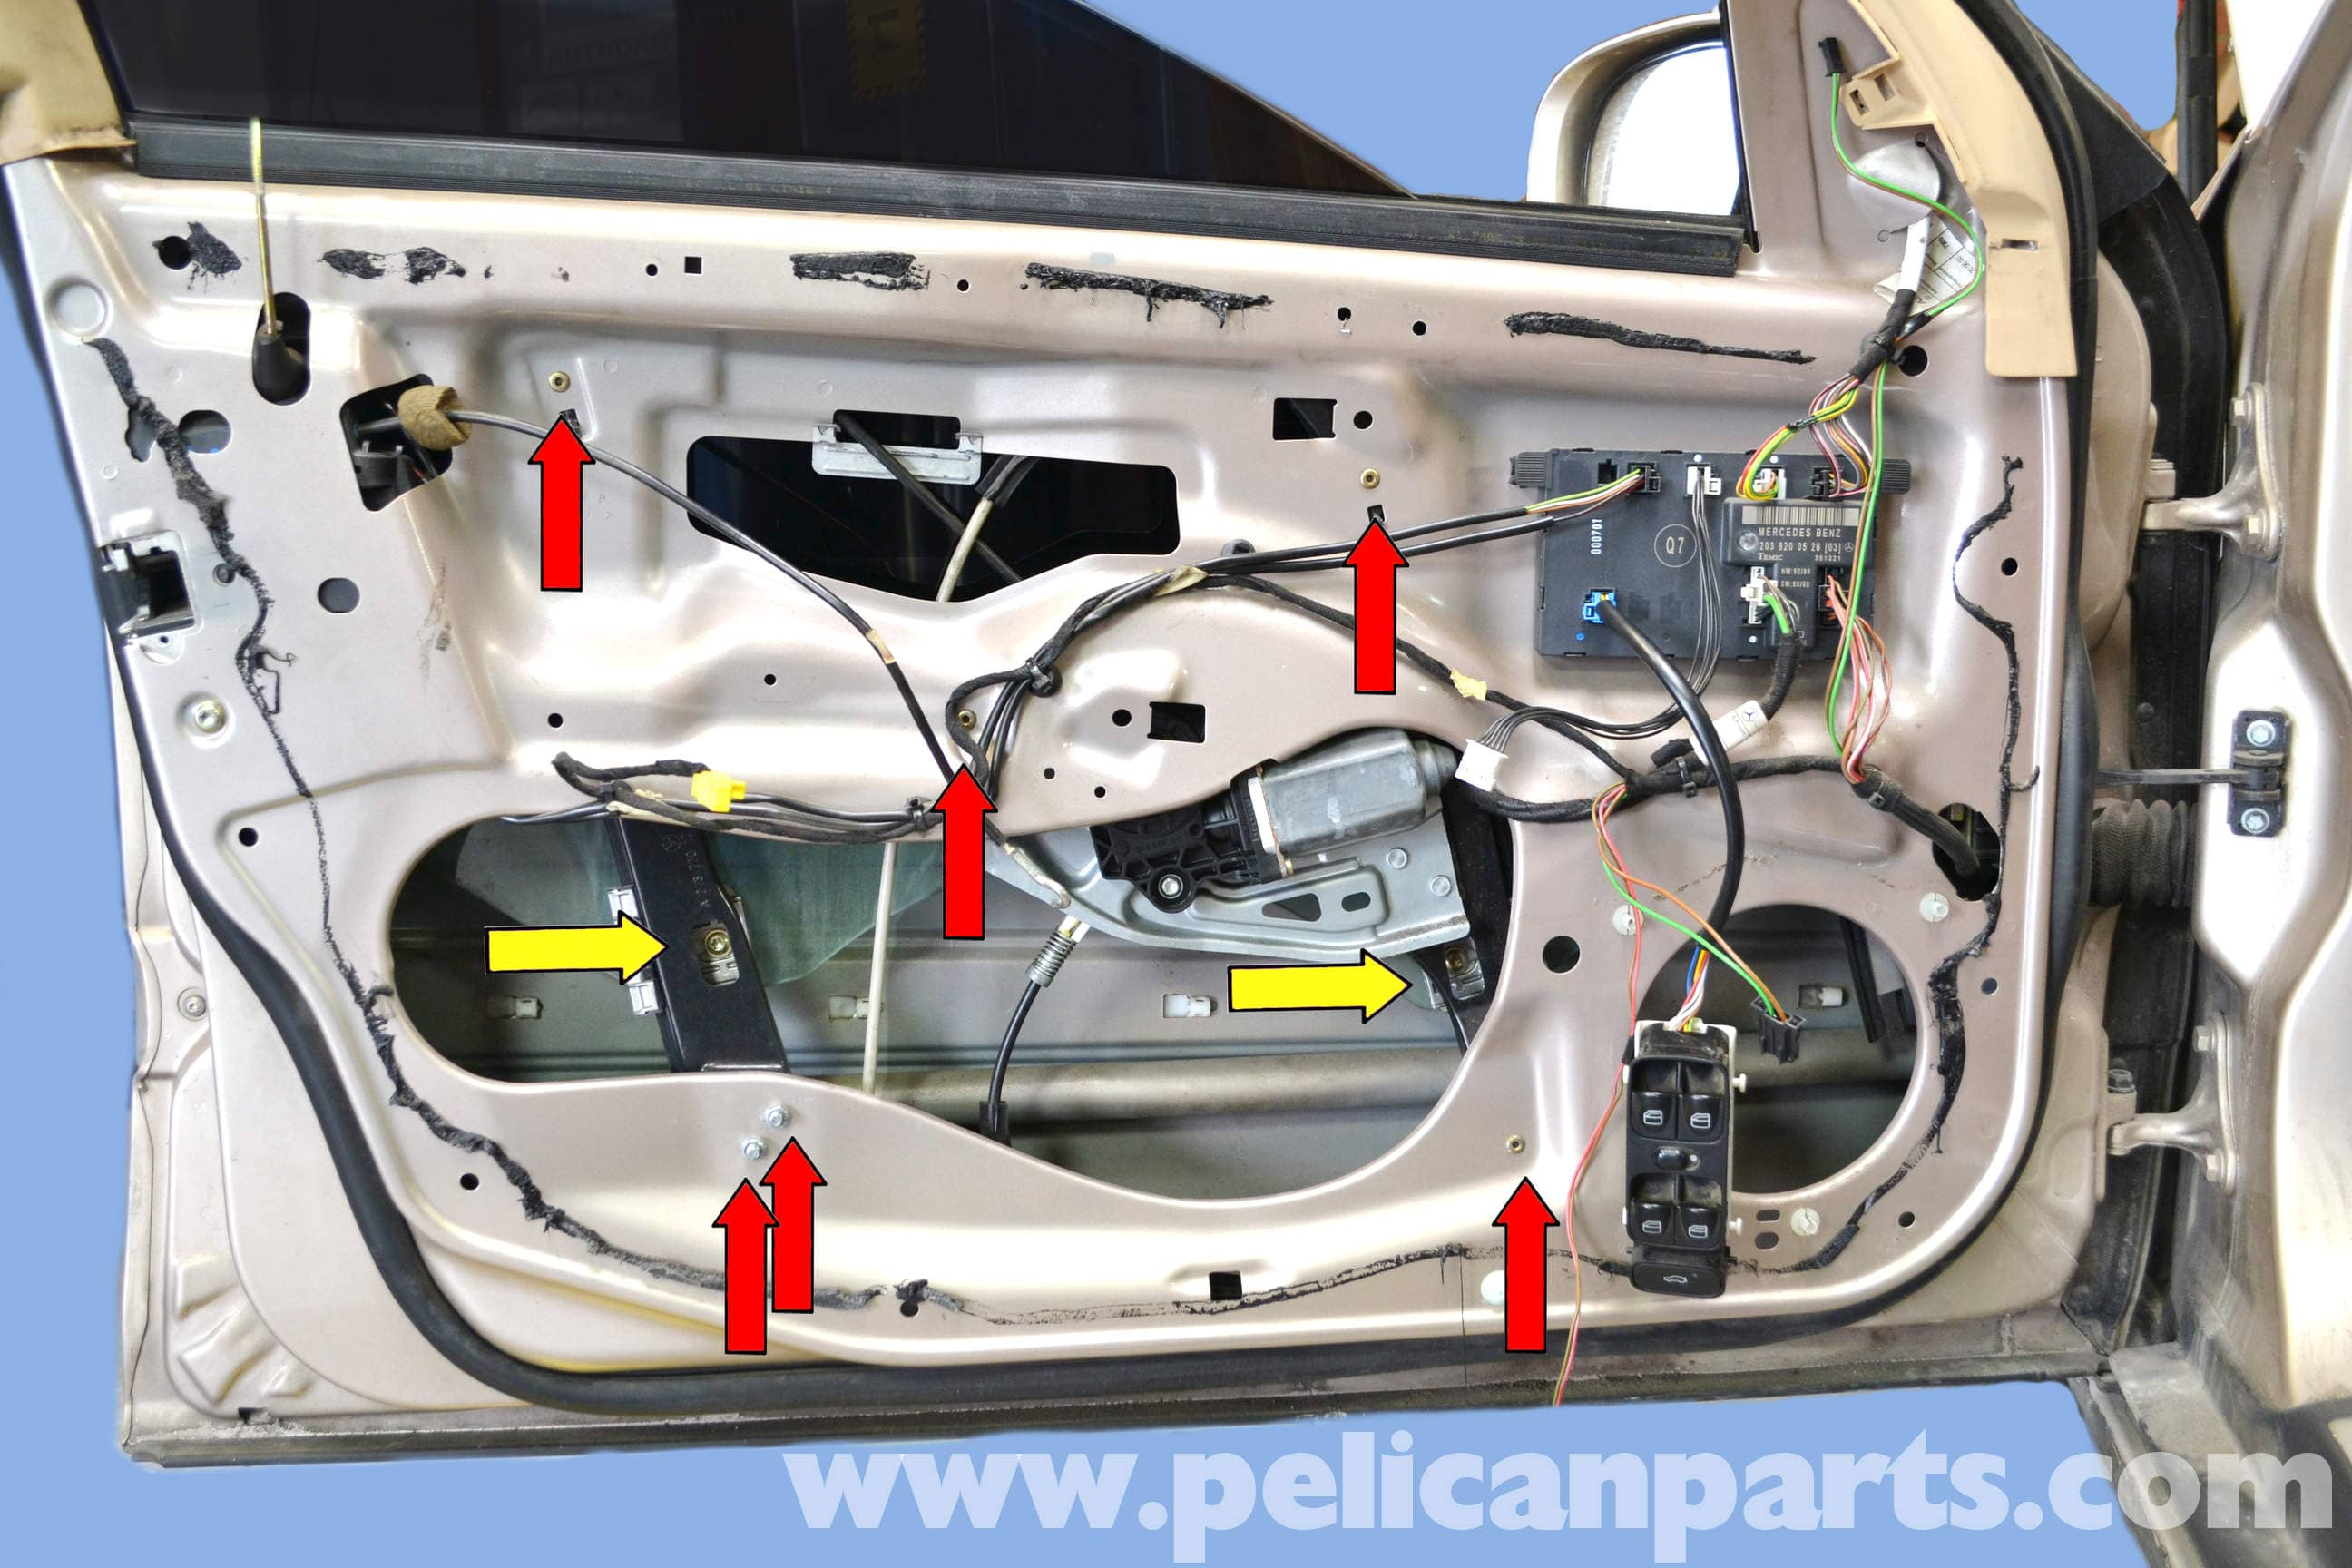 Mercedes W203 Parts Diagram Trusted Wiring Benz Page 3 And Shudder